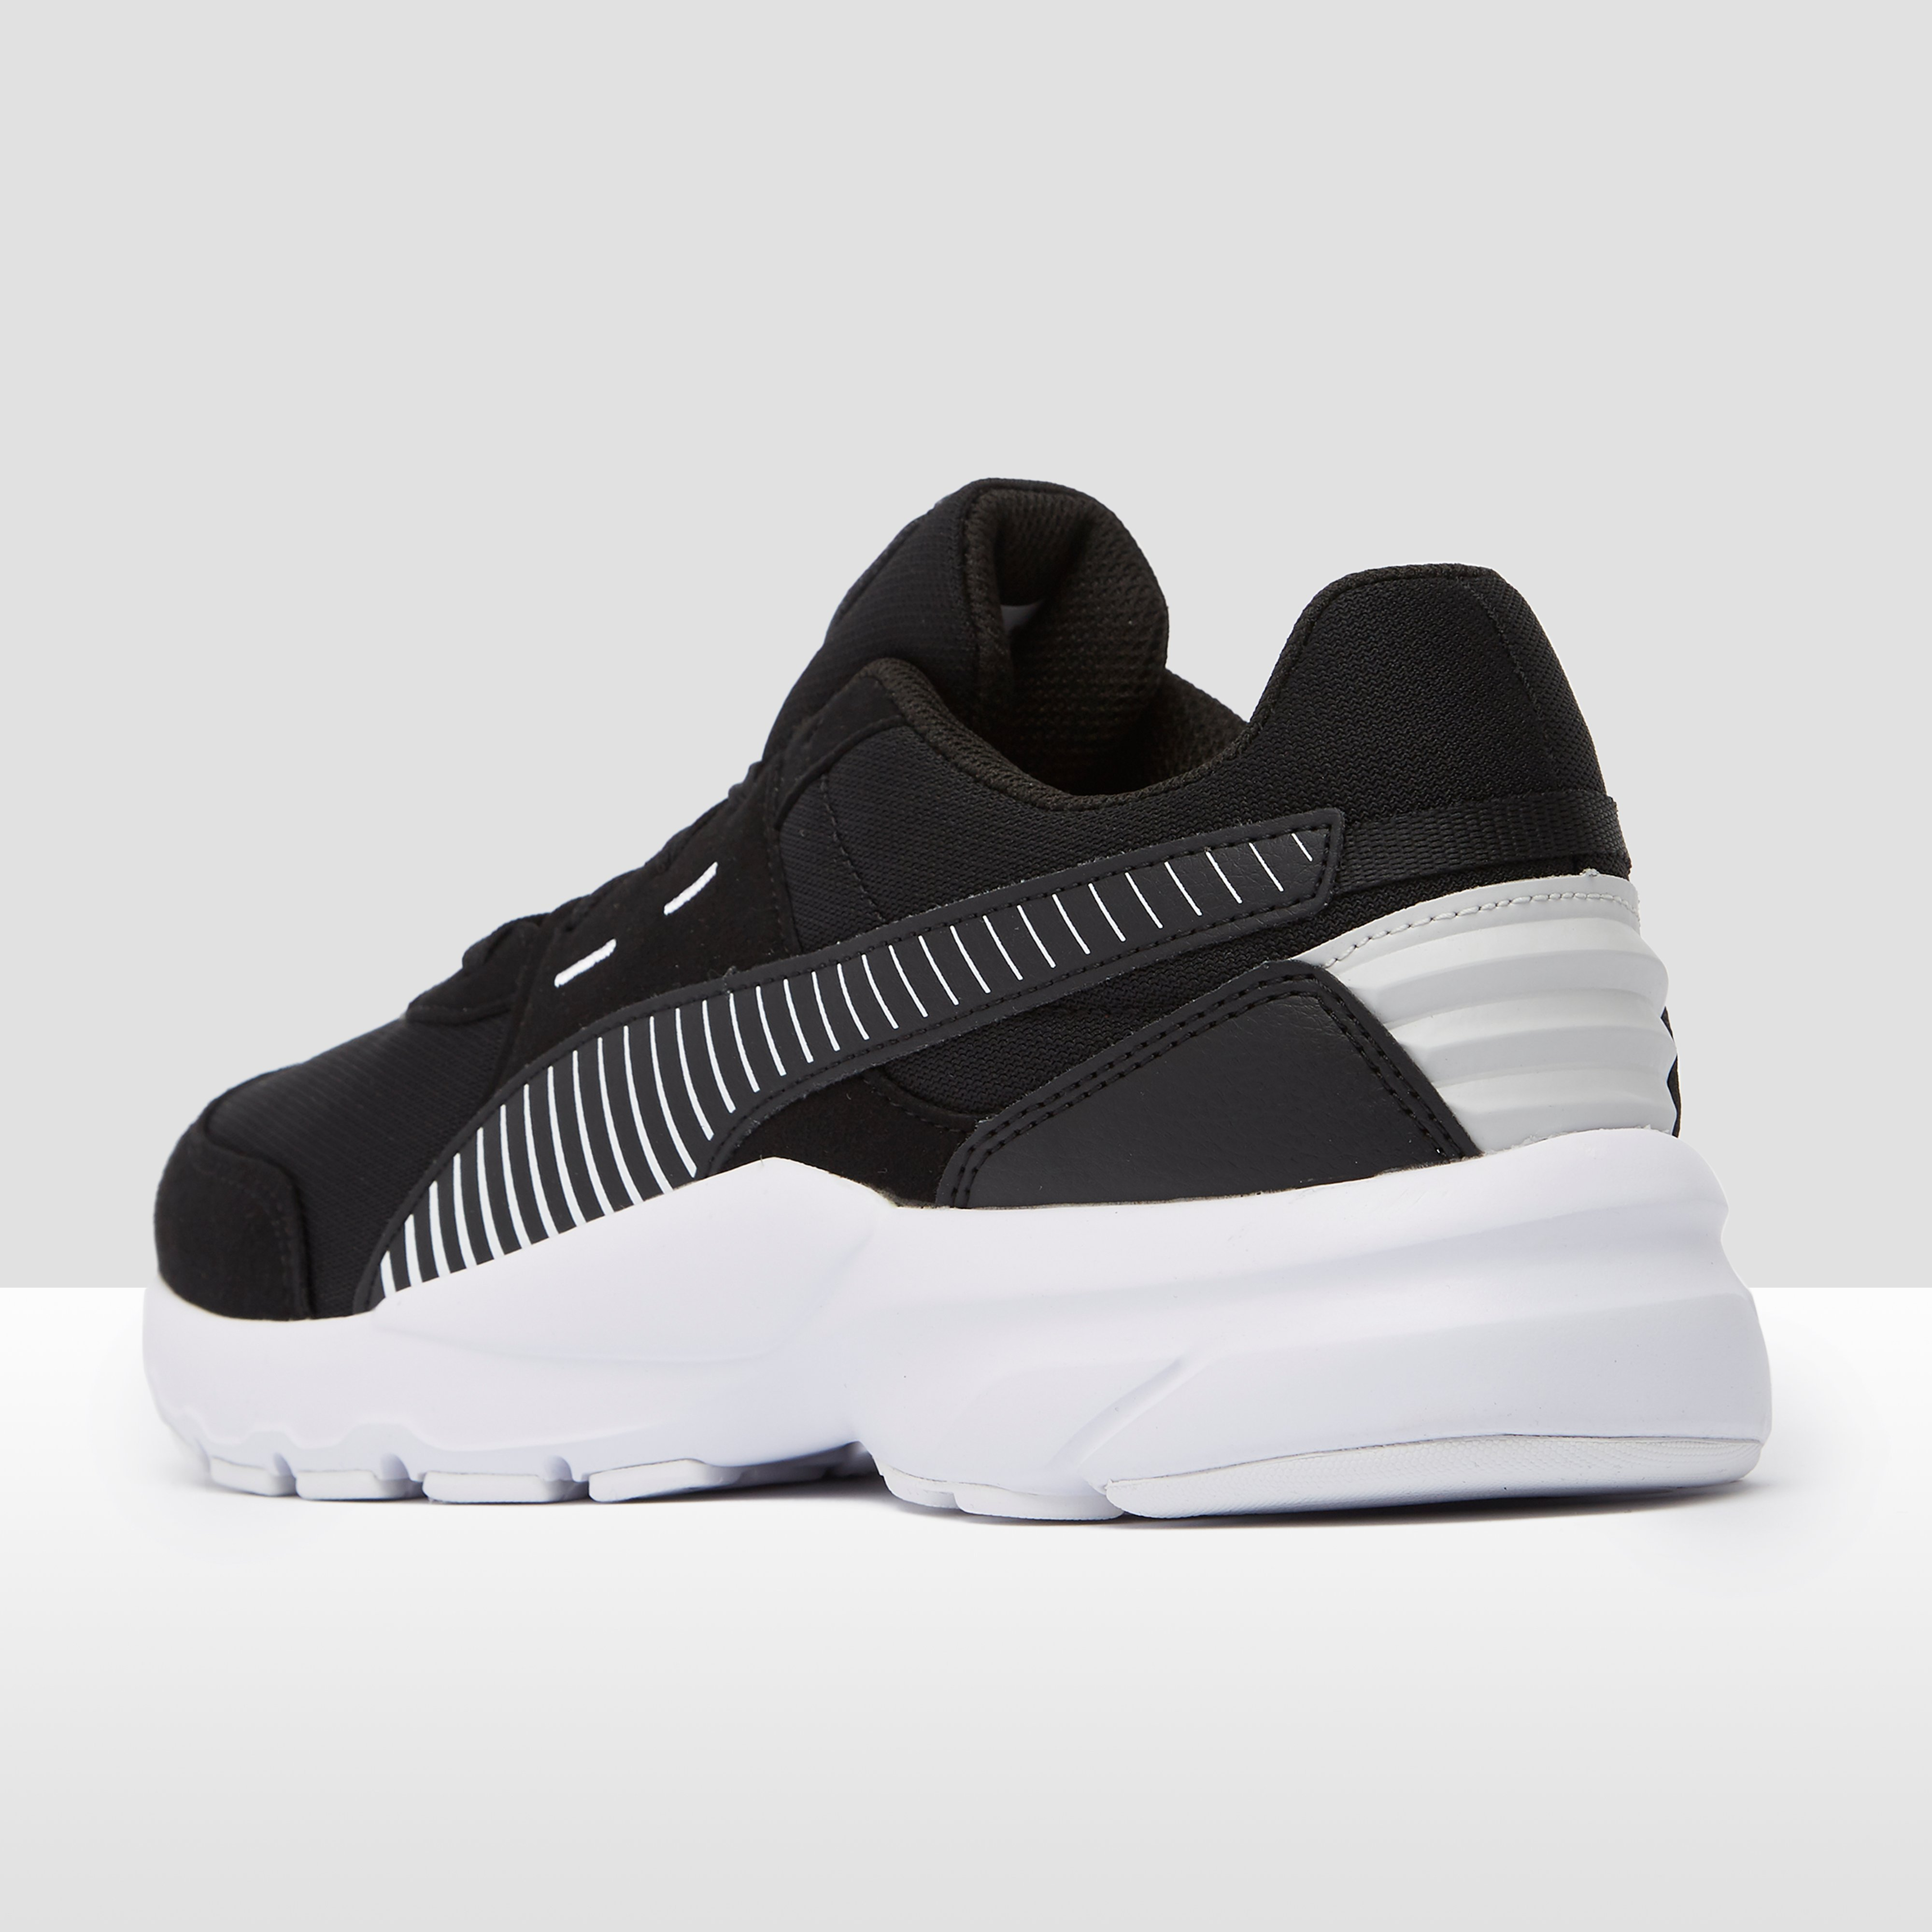 PUMA CHUNKY FUTURE RUNNER SNEAKERS ZWART HEREN